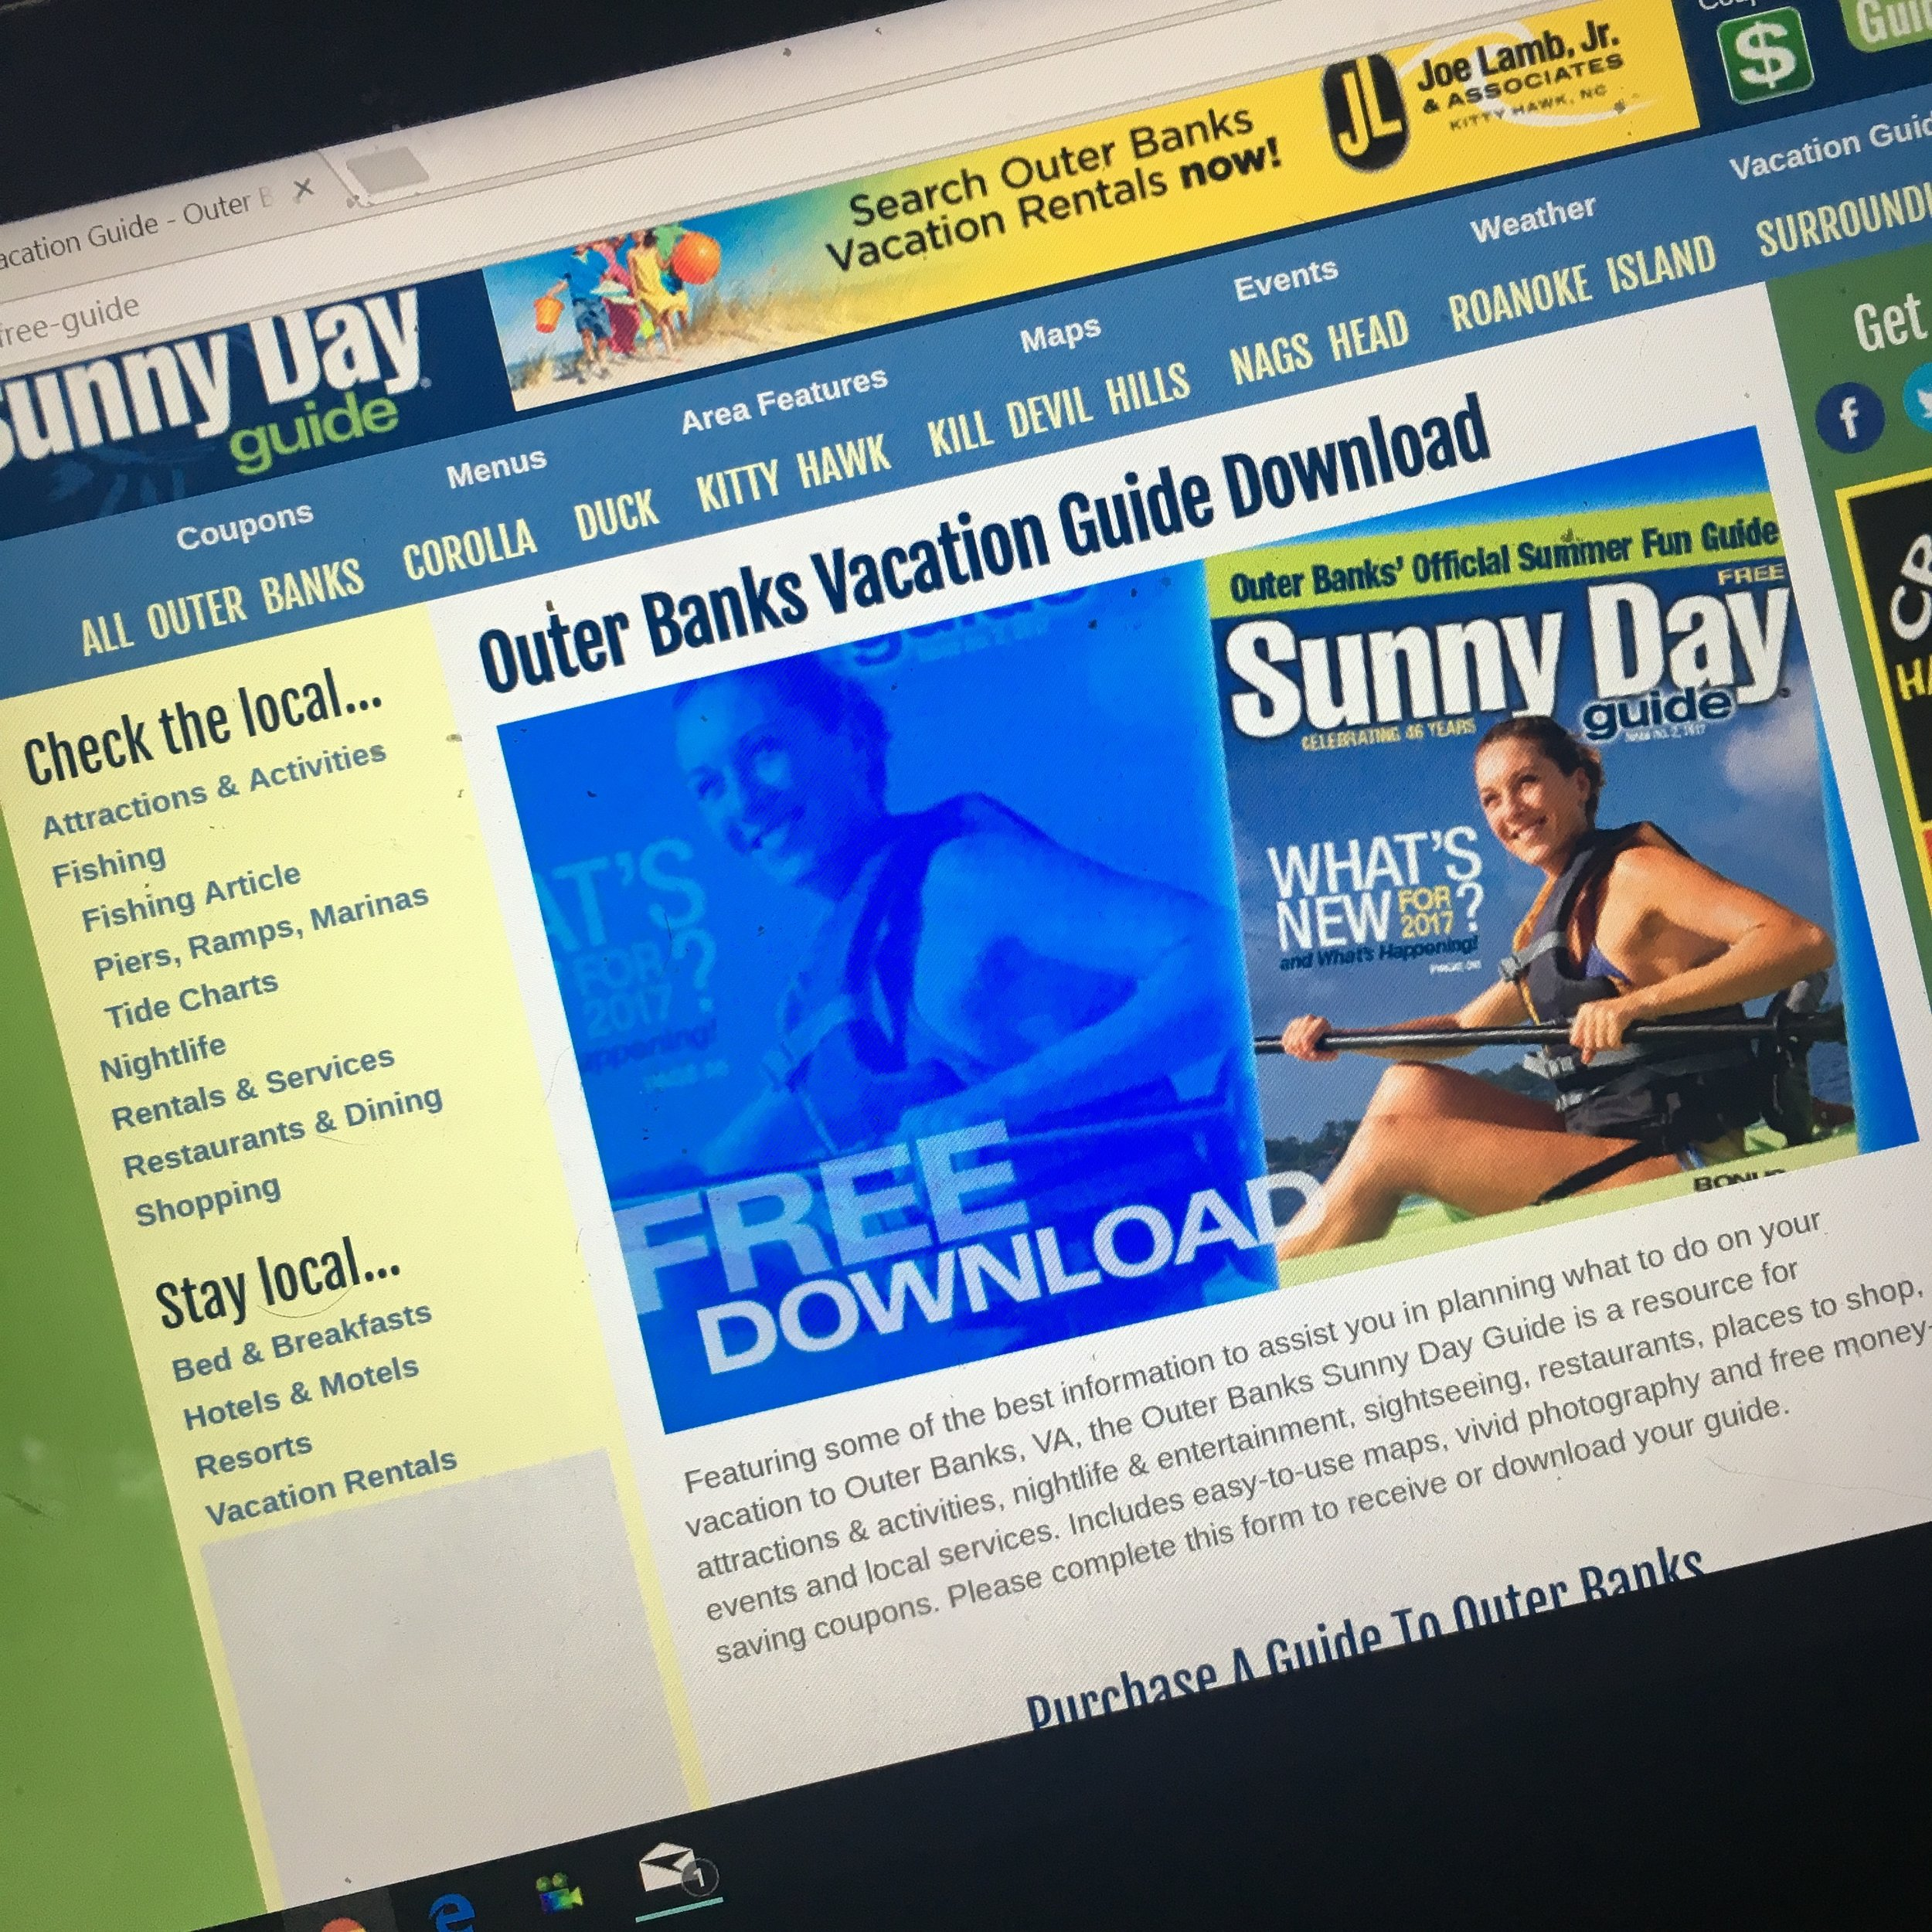 You can get a Sunny Day guide sent you to via mail or download!  These are frequently found at businesses on Hatteras Island.